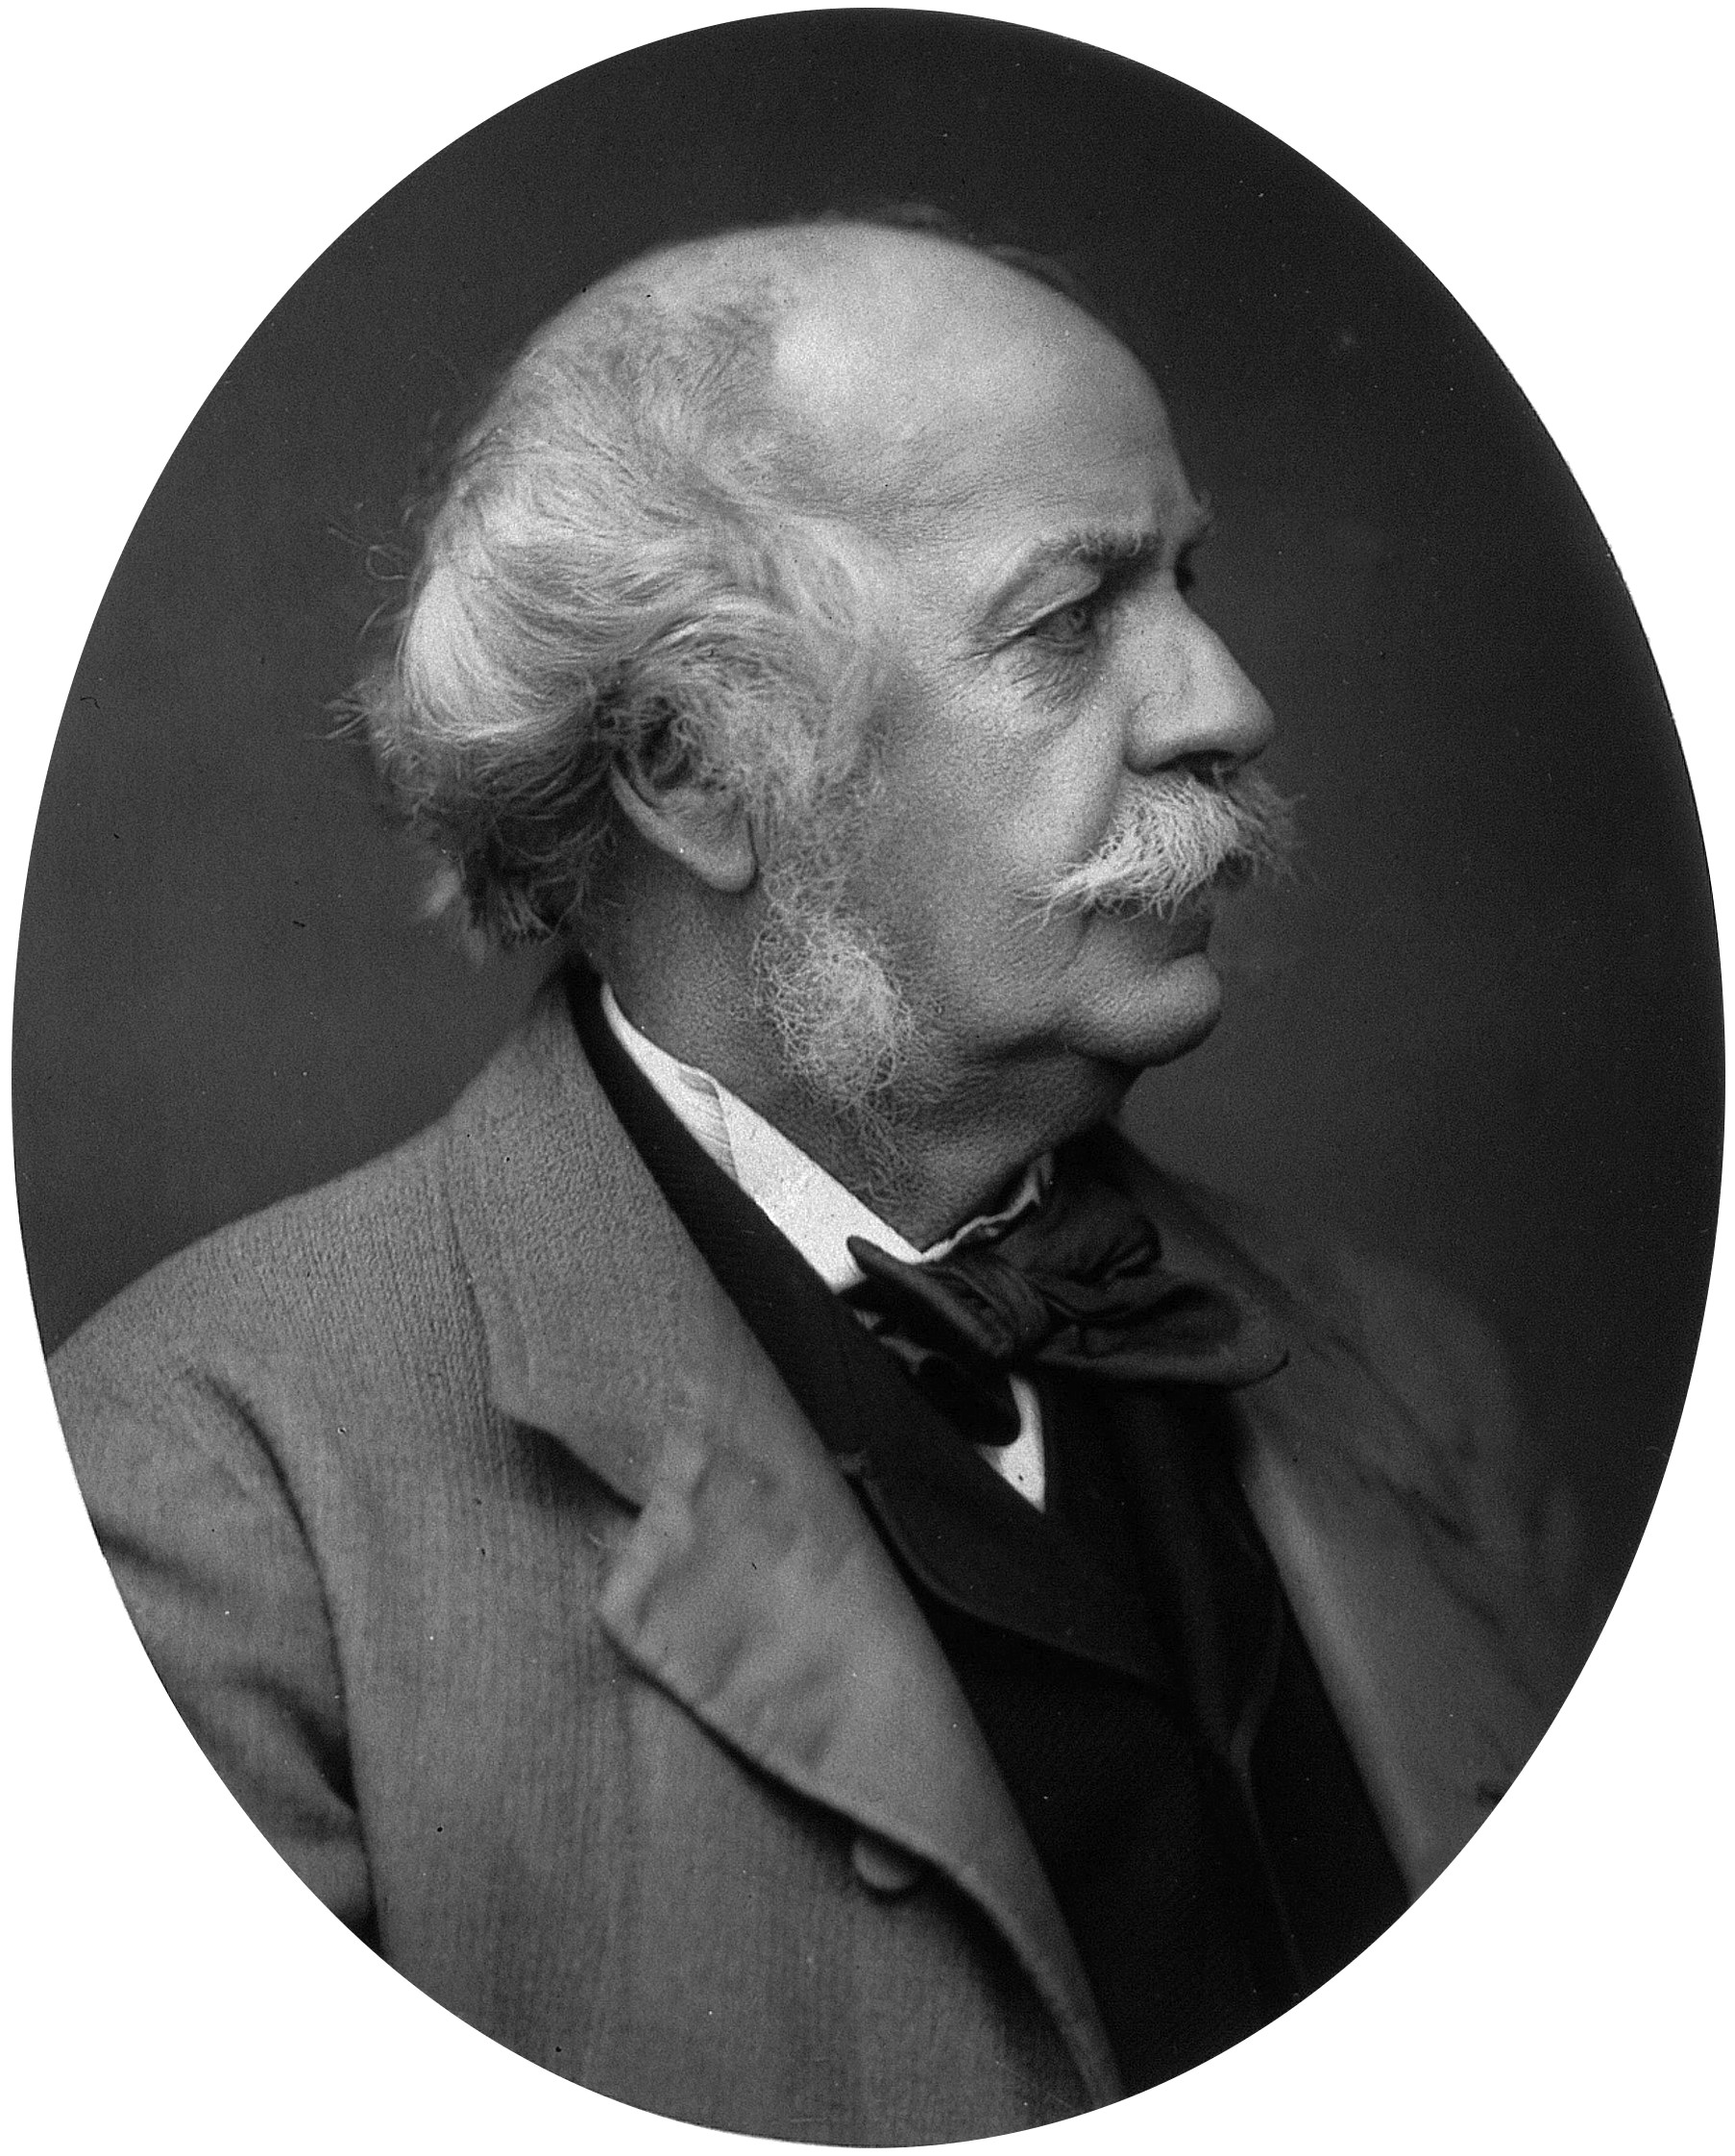 https://upload.wikimedia.org/wikipedia/commons/d/d6/Sir_Henry_Rawlinson.jpg